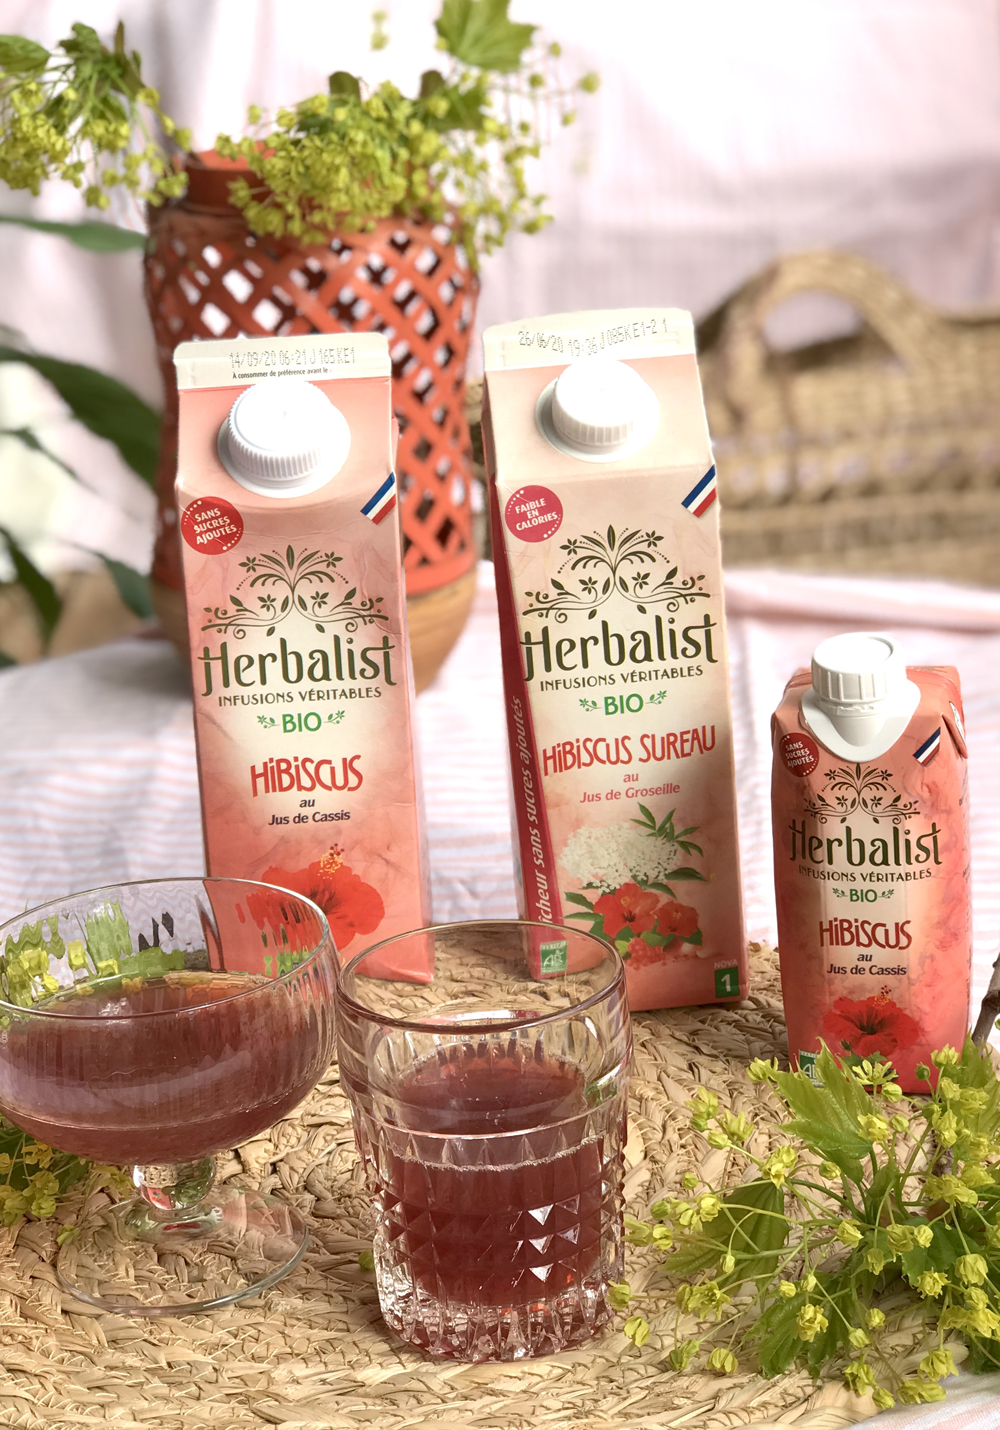 Herbalis infusions veritables exochic